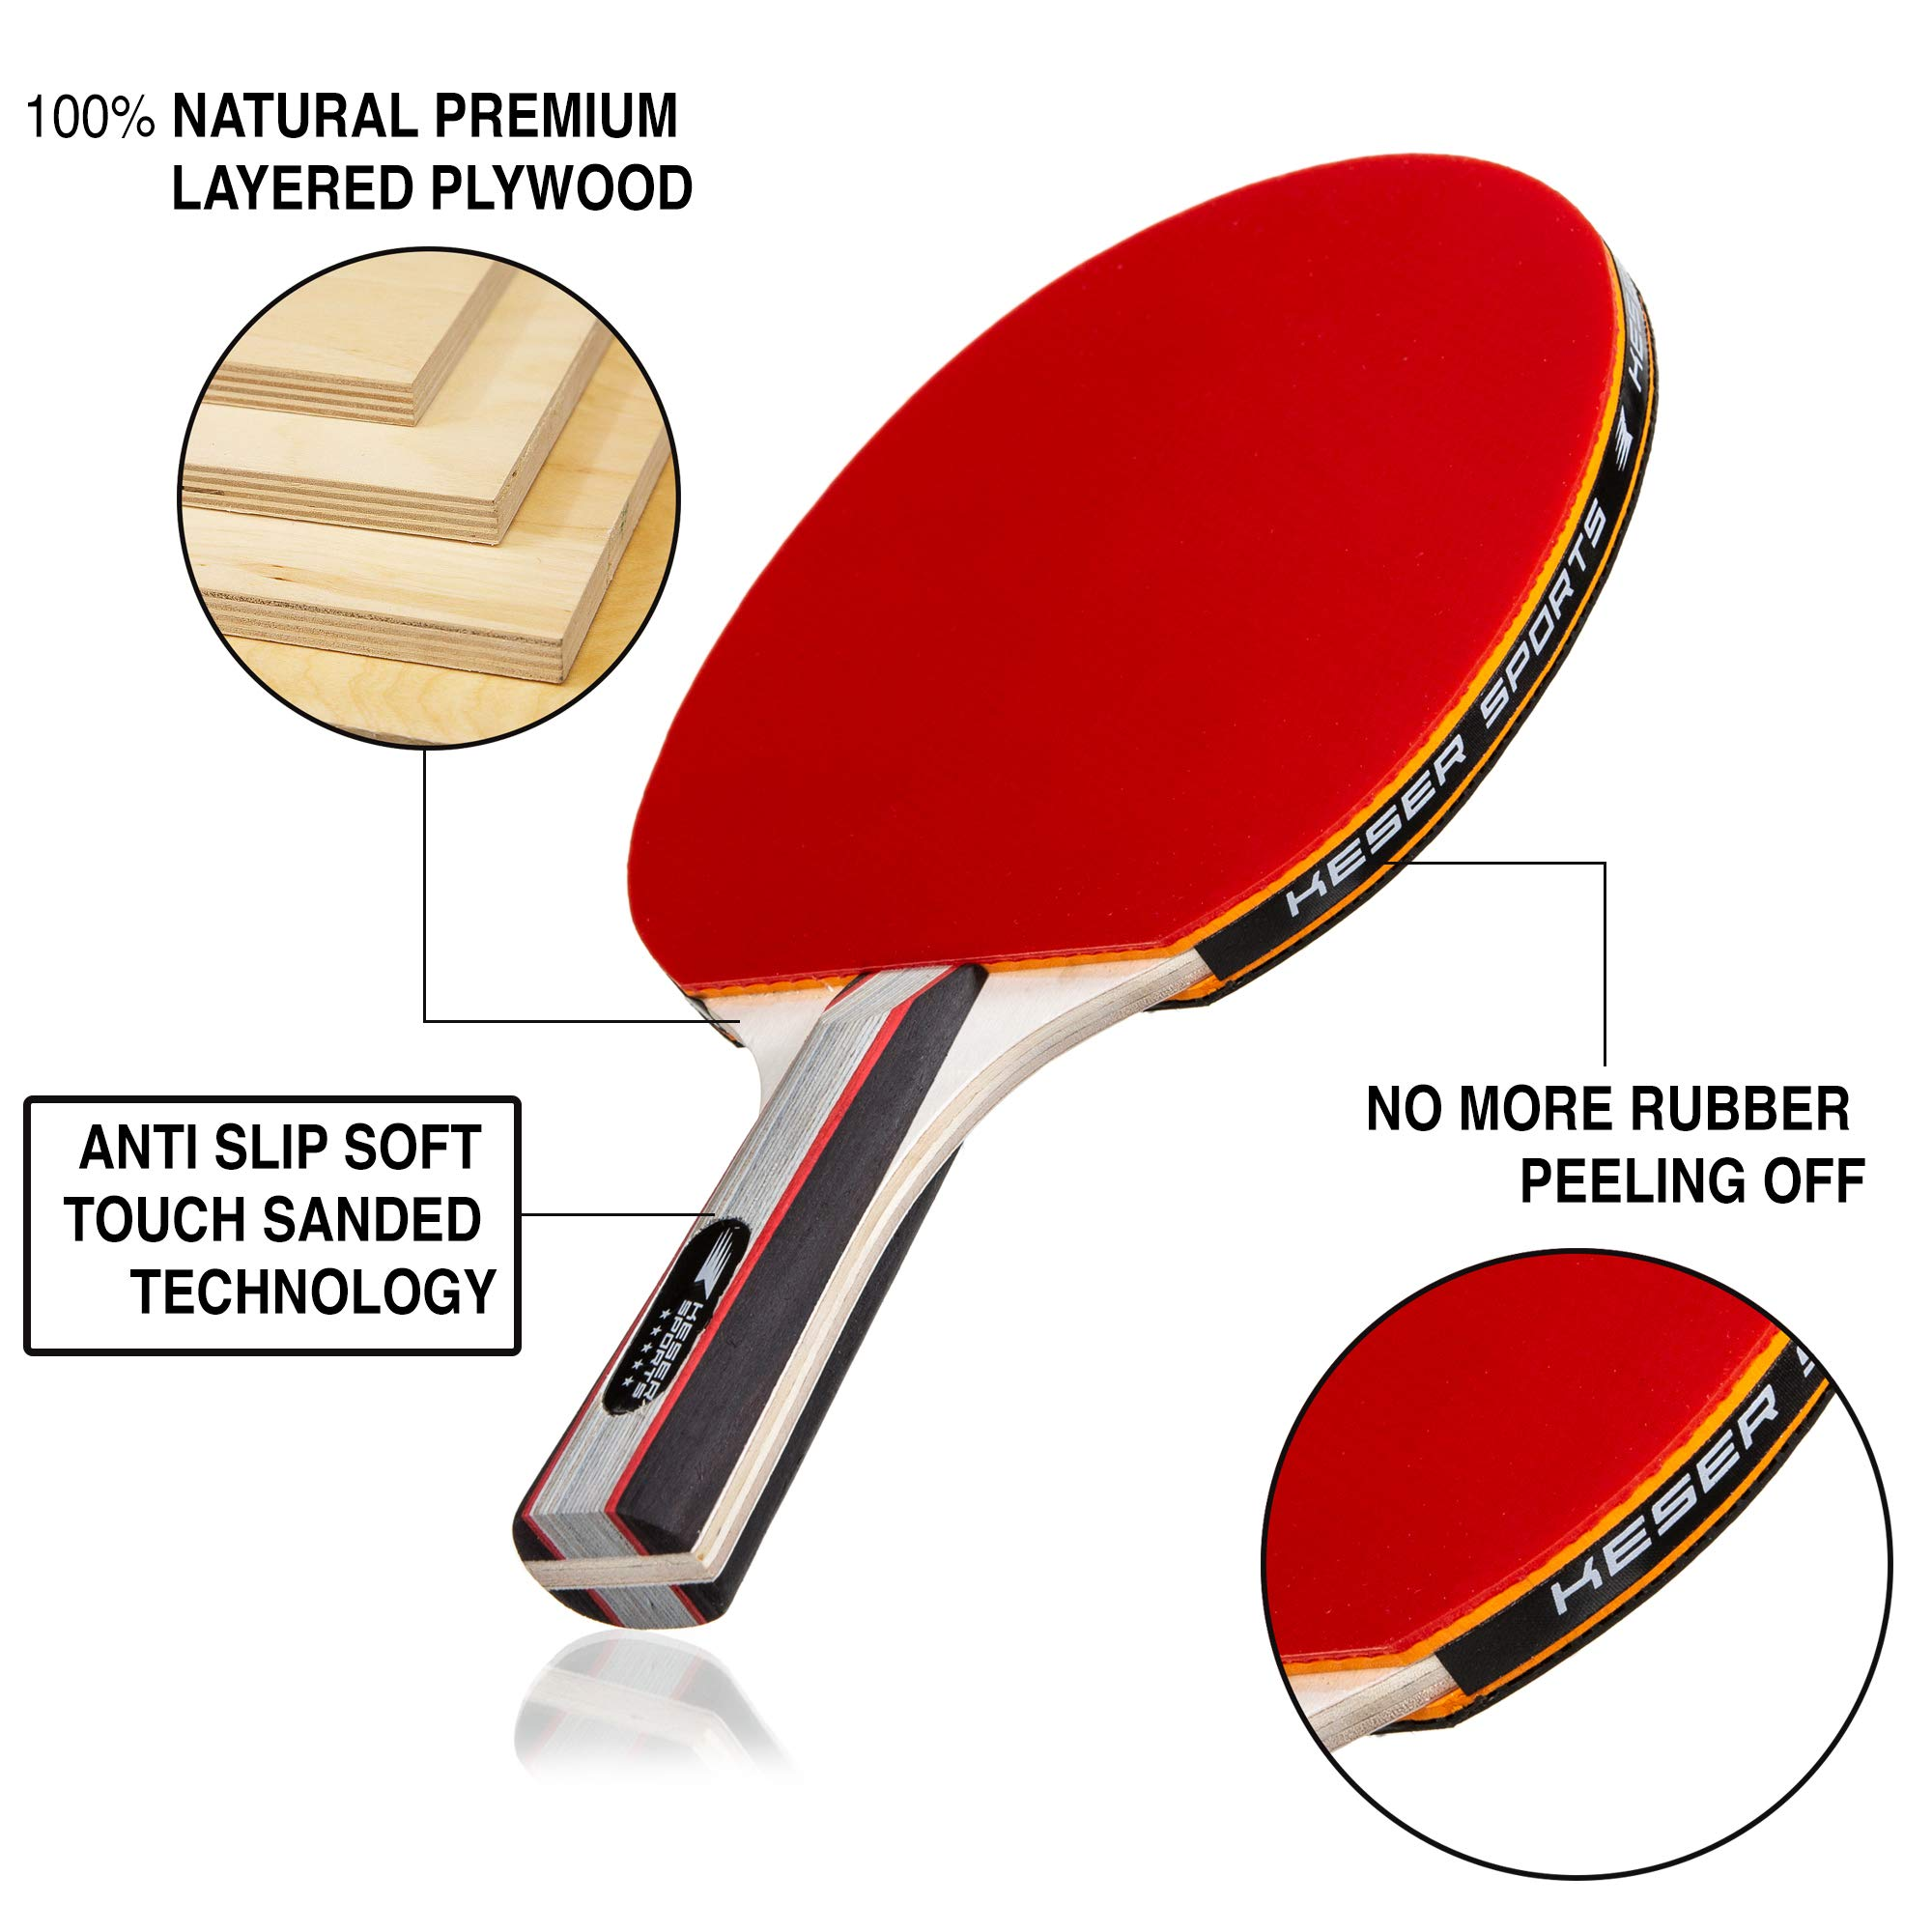 Keser Sports 5-Star Ping Pong Paddle Set, 4-Player Racket Set Bundle, 8 Professional ABS Balls, Portable Storage Bag, Full Table Tennis Set, Advanced Spin, Speed & Control, Play Outdoors/Indoors by Keser Sports (Image #3)